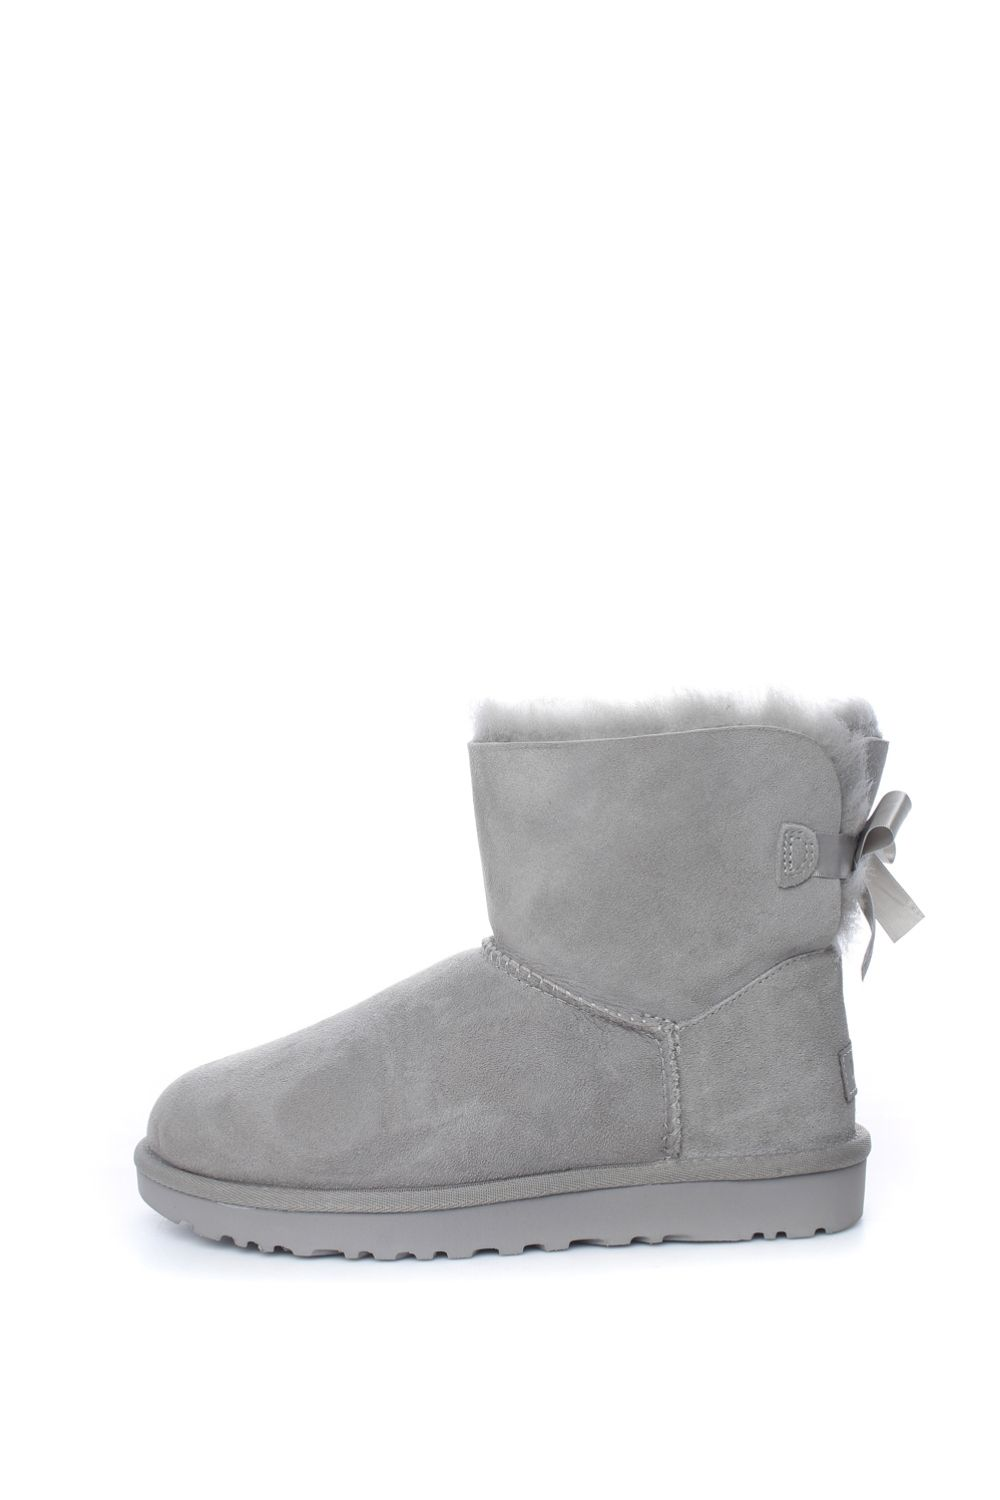 7948bbbe1c9 Collective Online UGG – Γυναικεία μποτάκια MINI BAILEY BOW γκρι